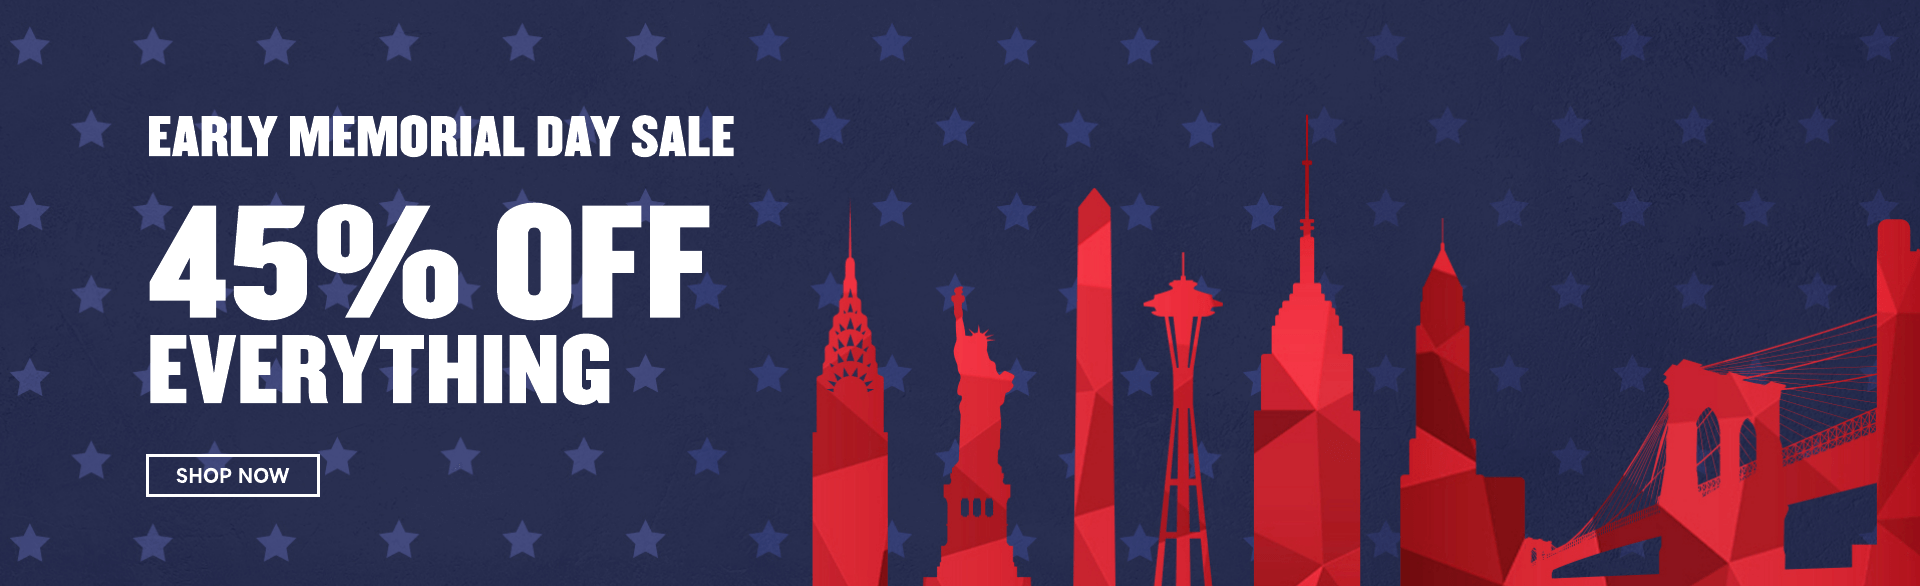 Early Memorial Day Sale. 45% OFF Everything. Use code: MEMORIAL